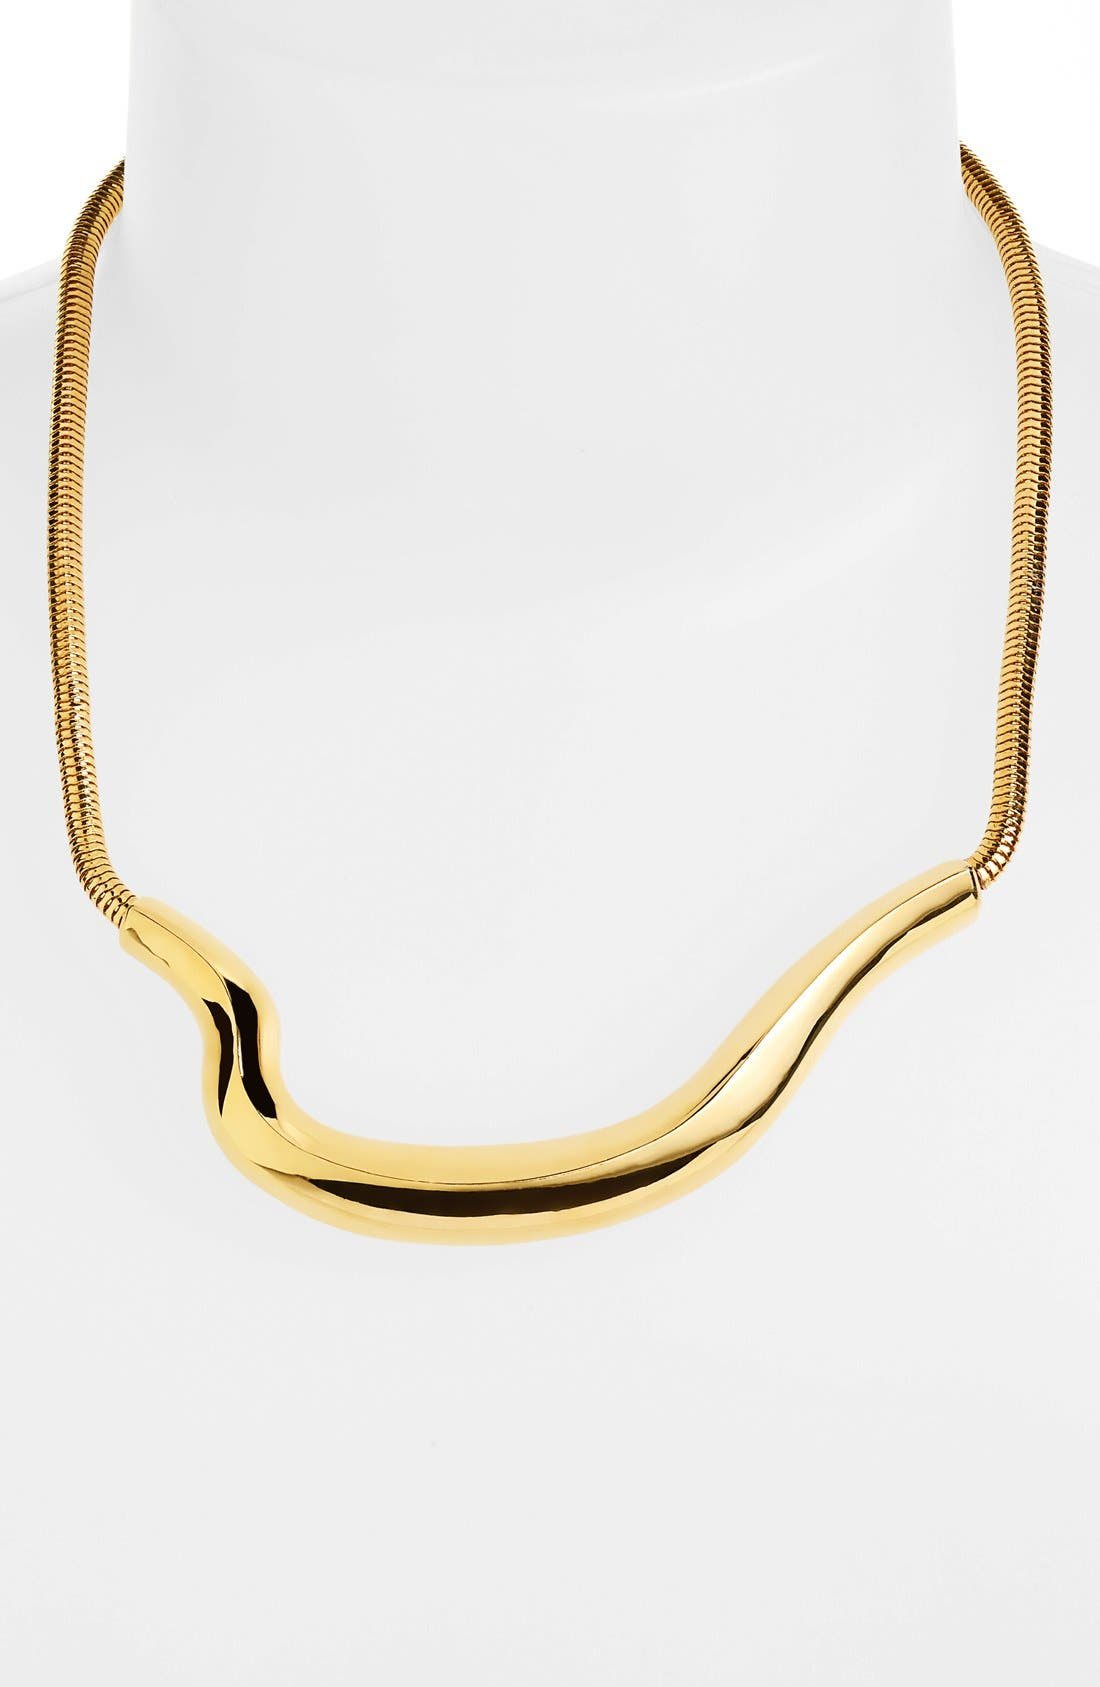 Main Image - Vince Camuto 'Liquid Luxury' Frontal Necklace